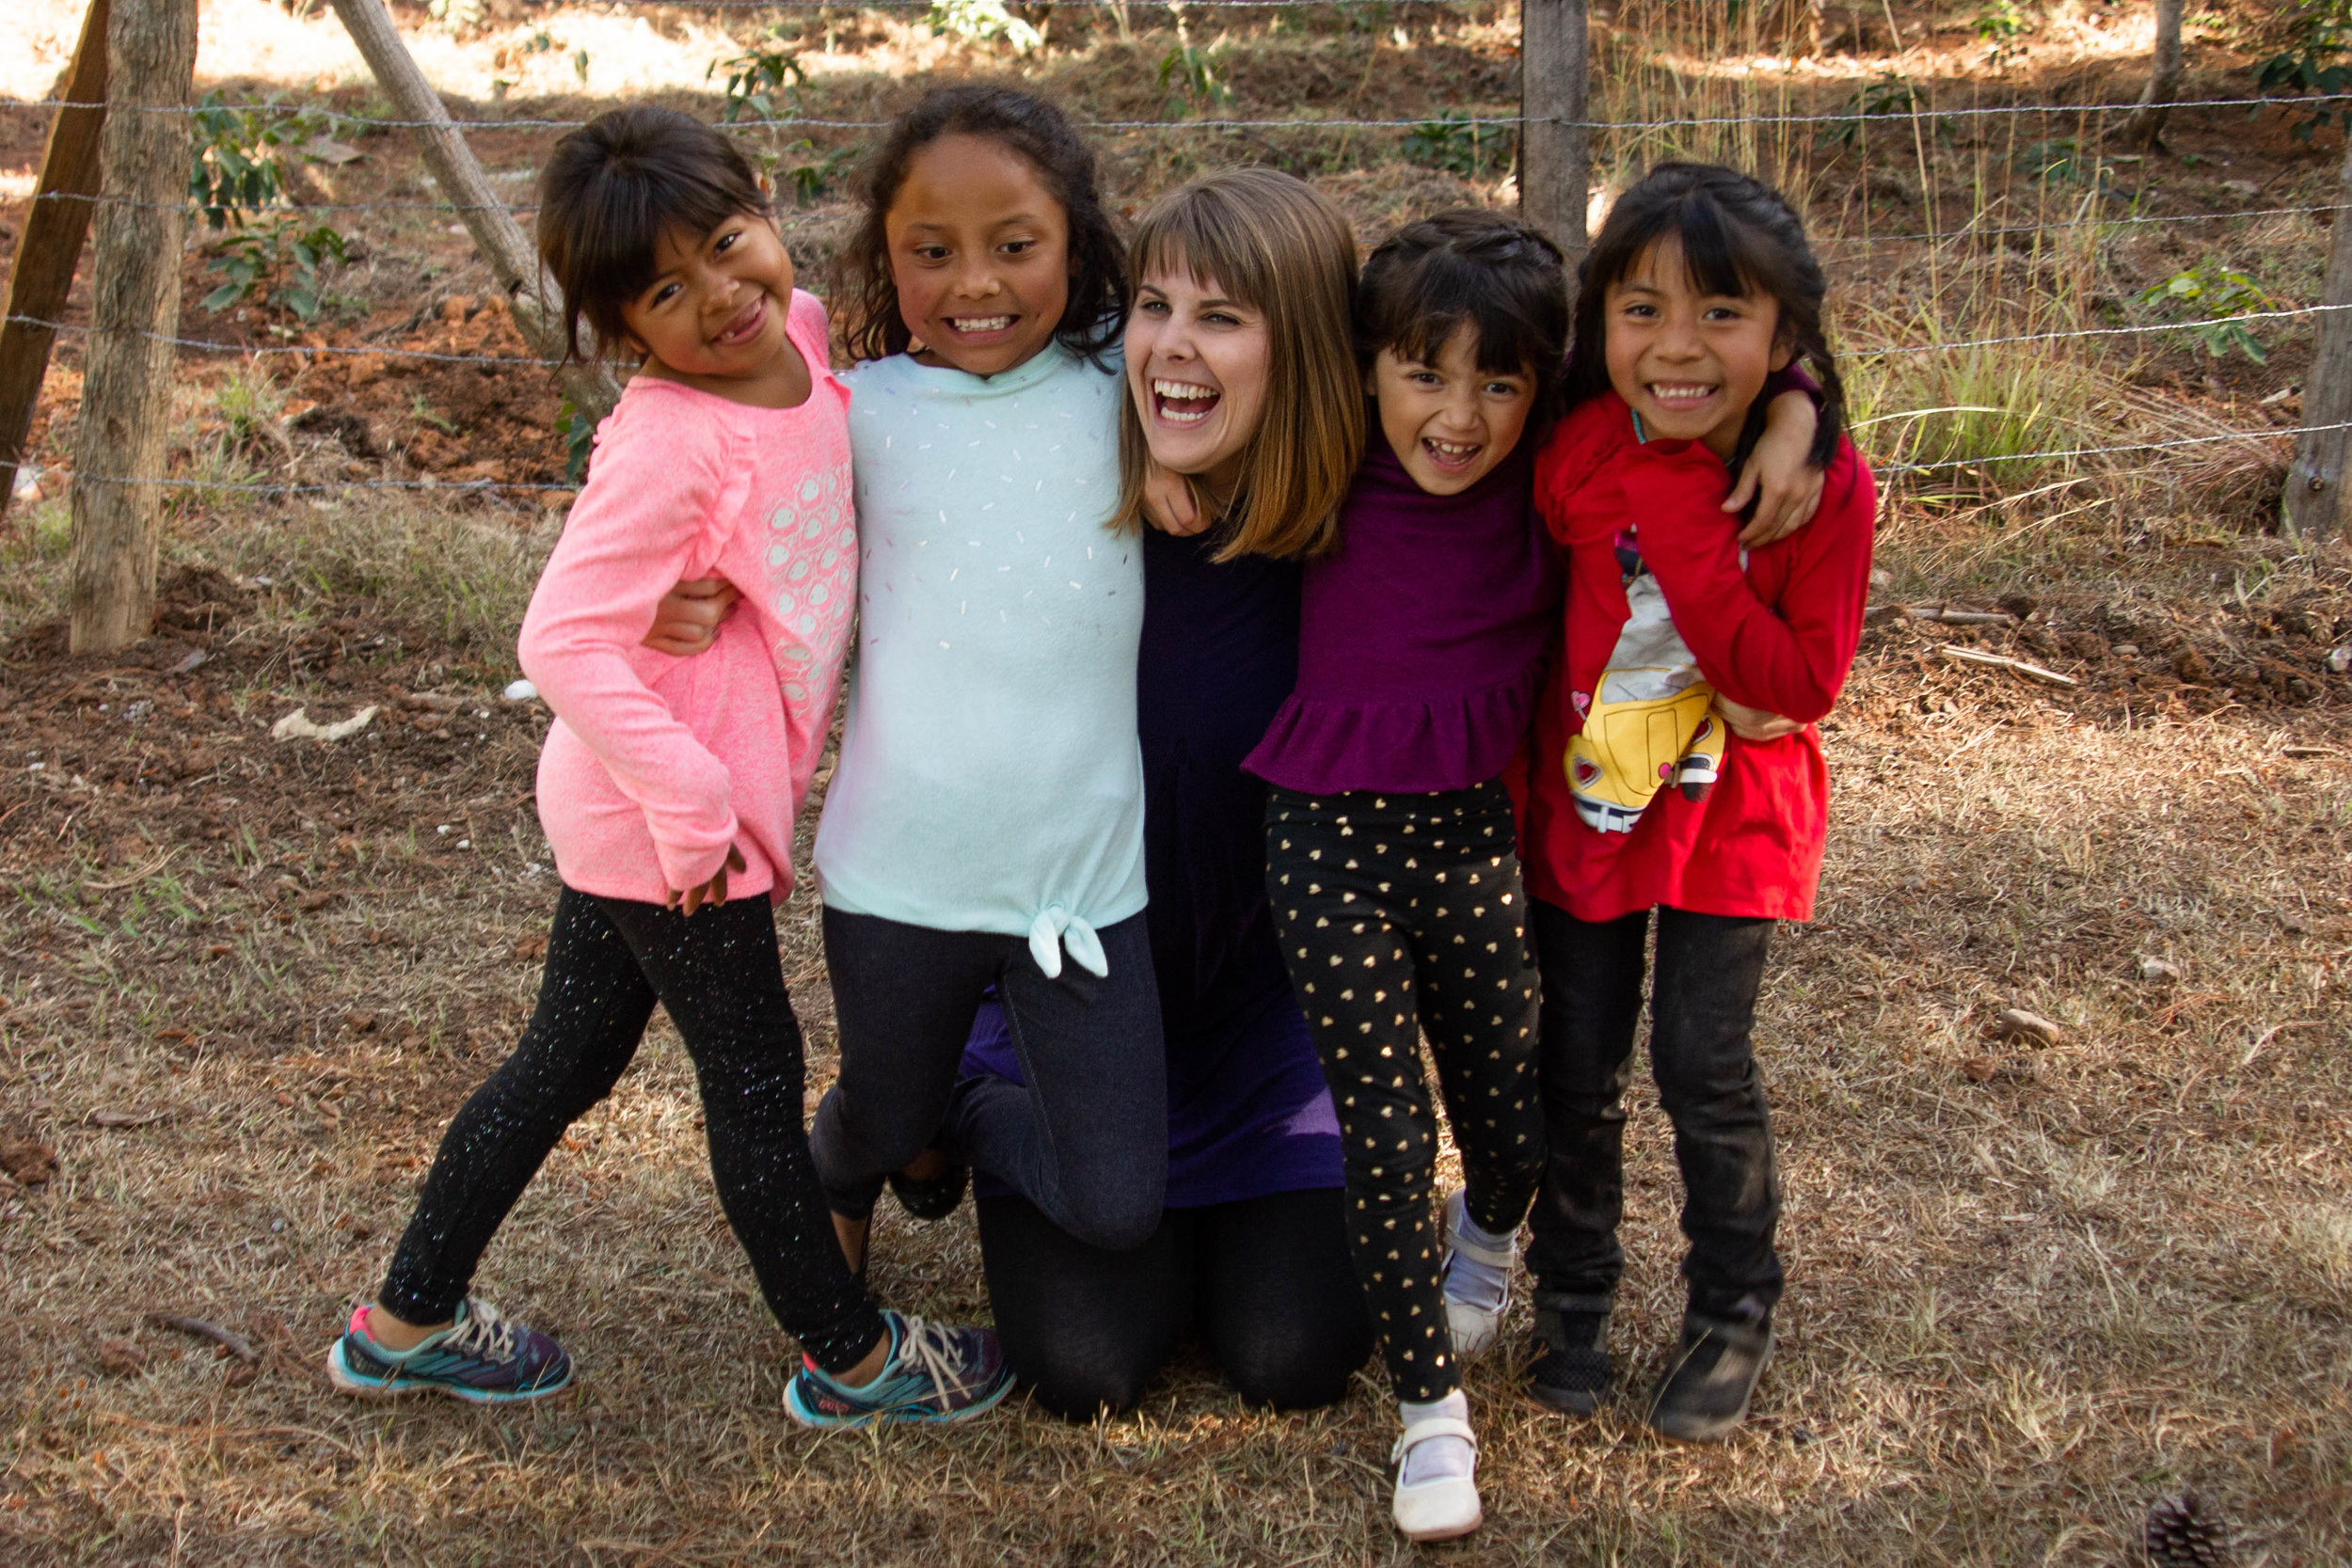 """- """"My trip down to the farm visiting the PTC girls was amazing and life changing. The joy these girls have despite their past circumstances is incredible and inspiring. I went down there to bless them, but I truly believe they blessed me far more."""" Bekah Read"""